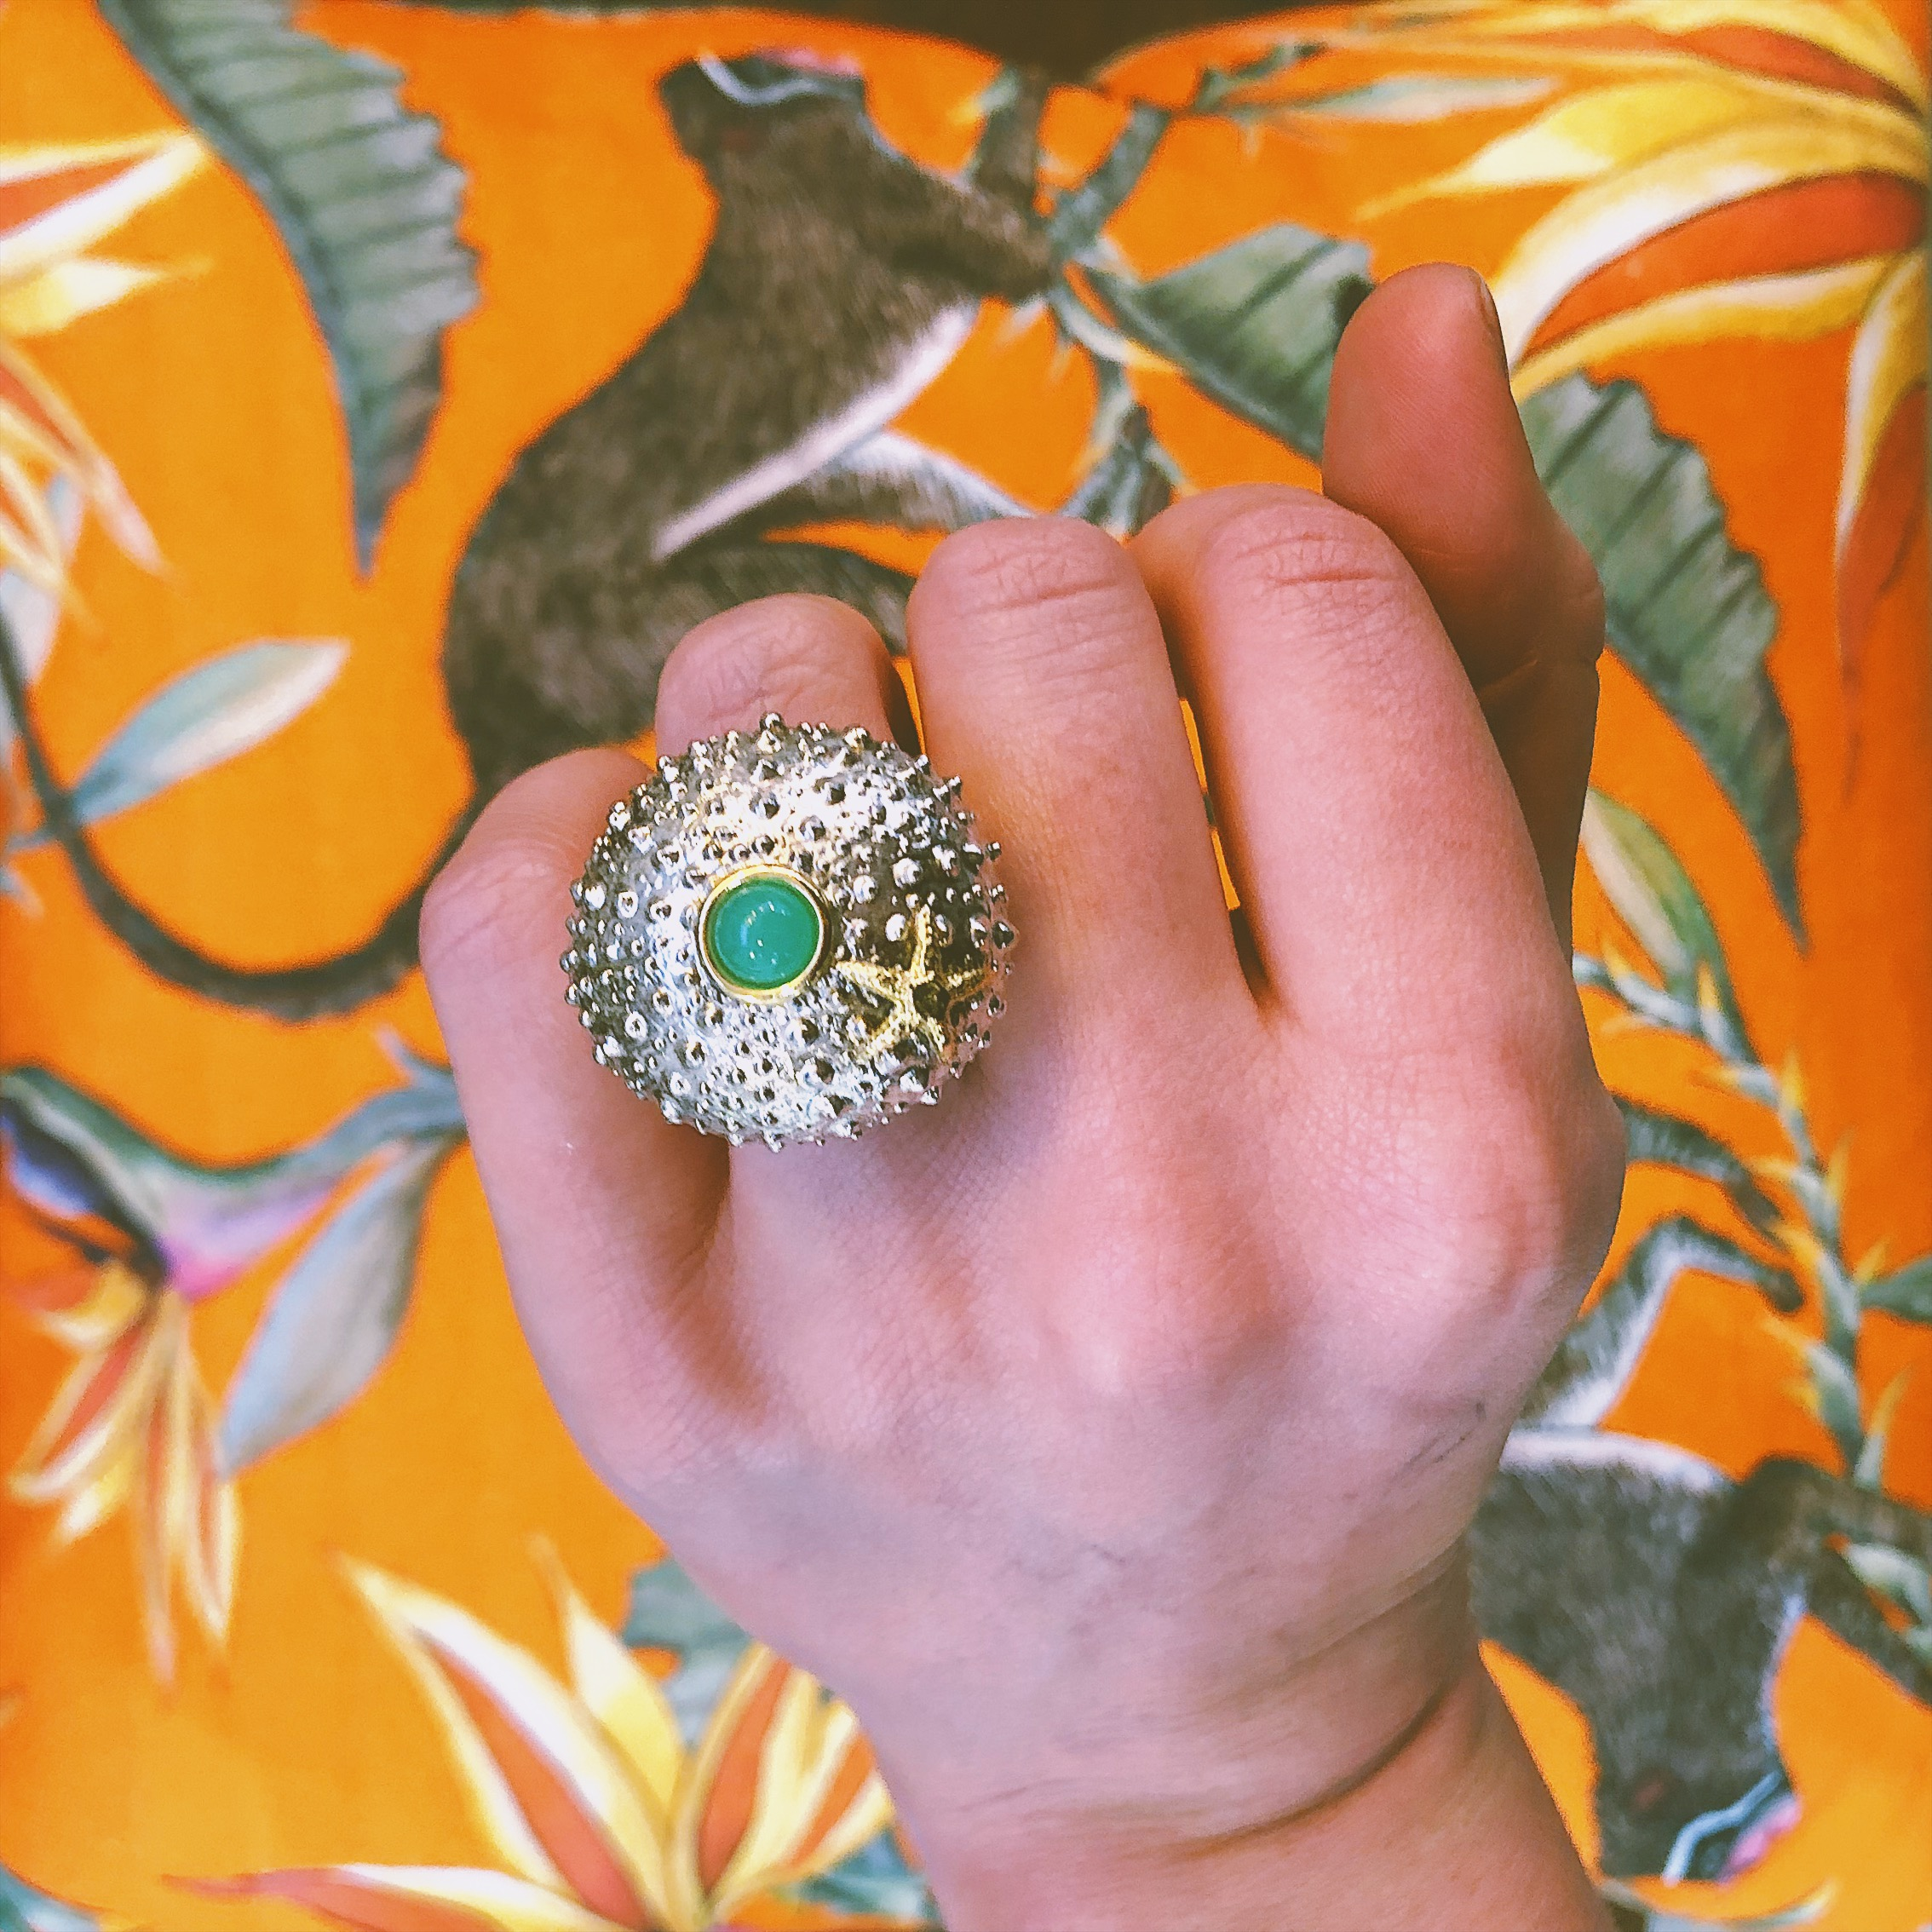 The sea urchin collection - on my wish list!